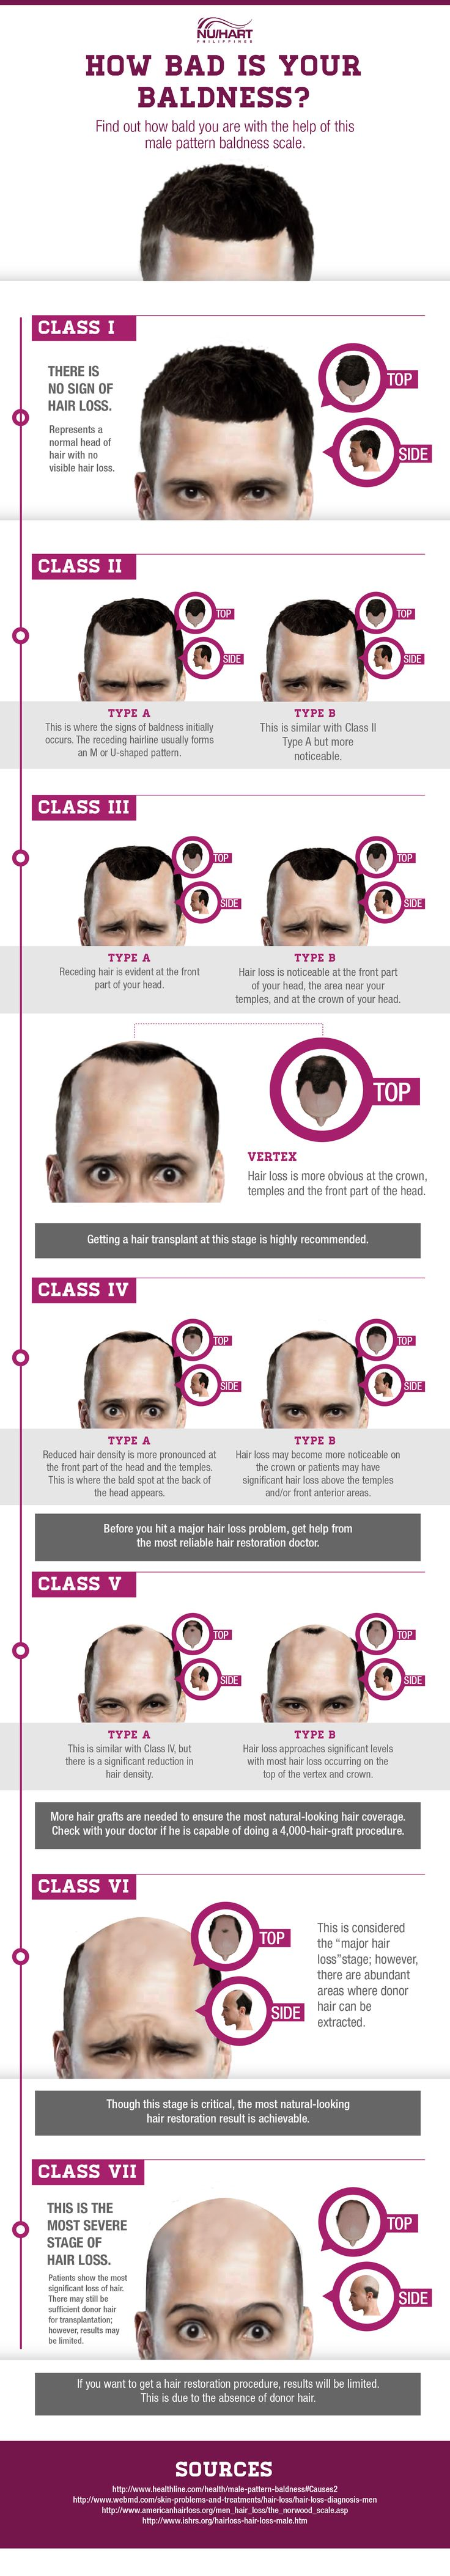 Male Baldness Scale: How Bad is Your Bald?